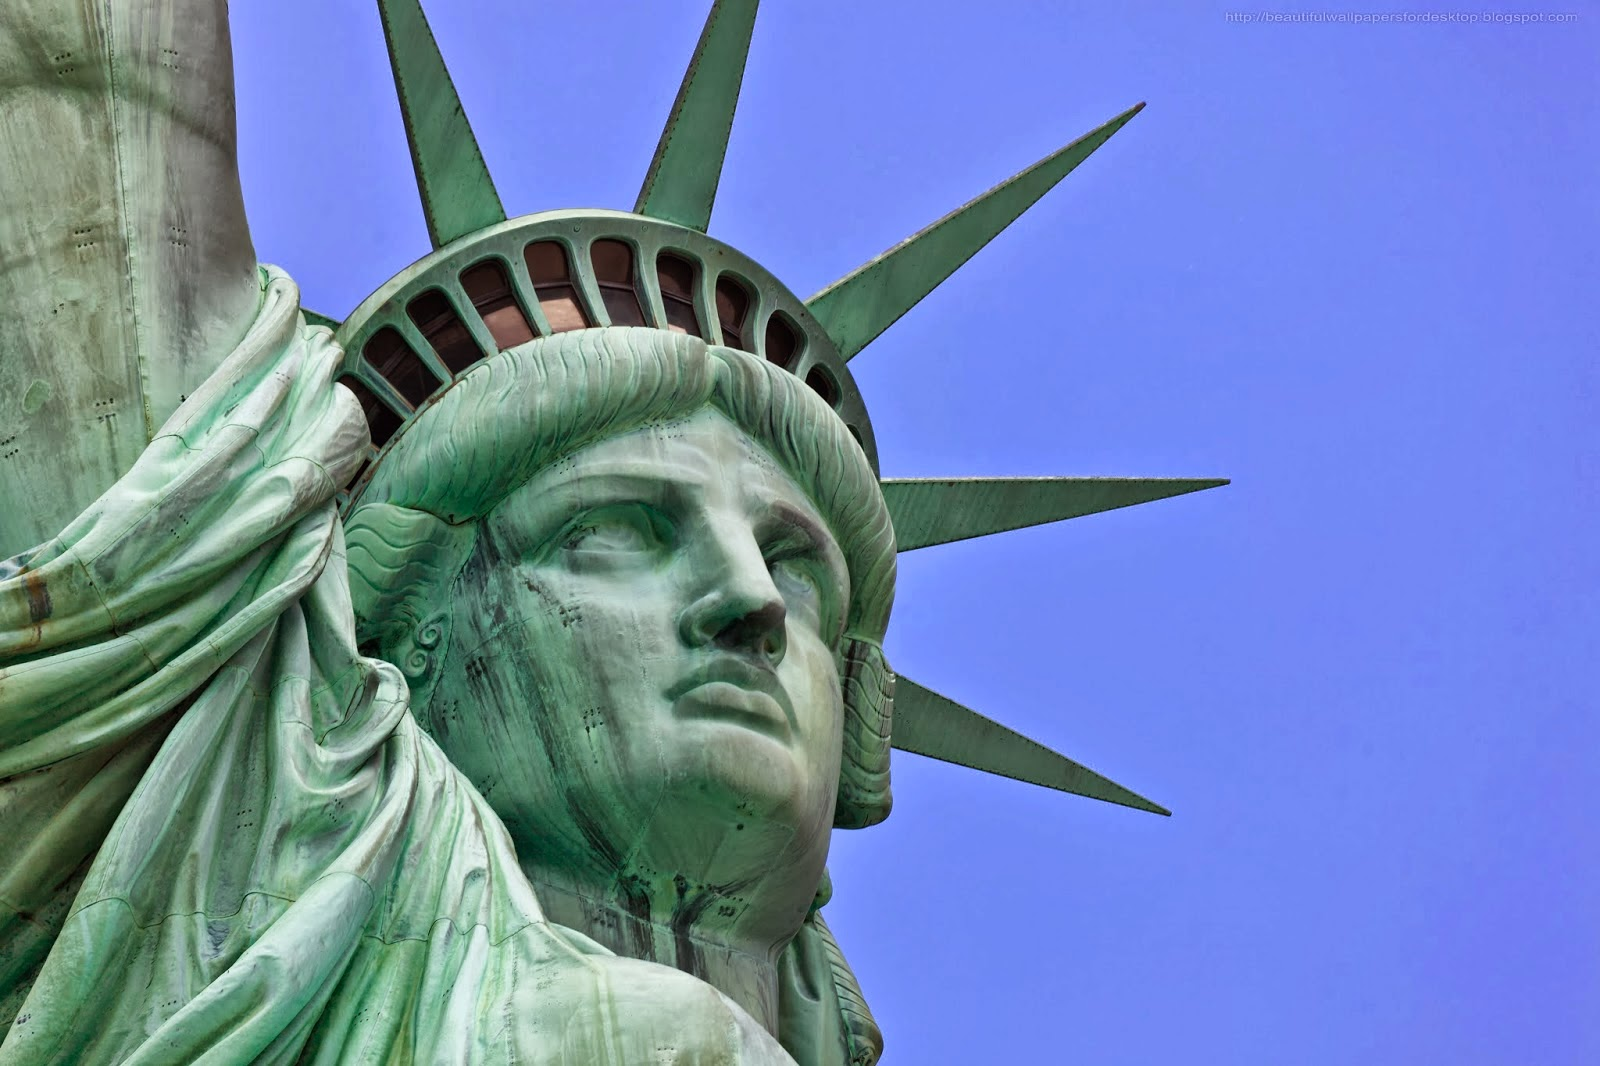 statue of liberty wallpapers hd | pattimccormick